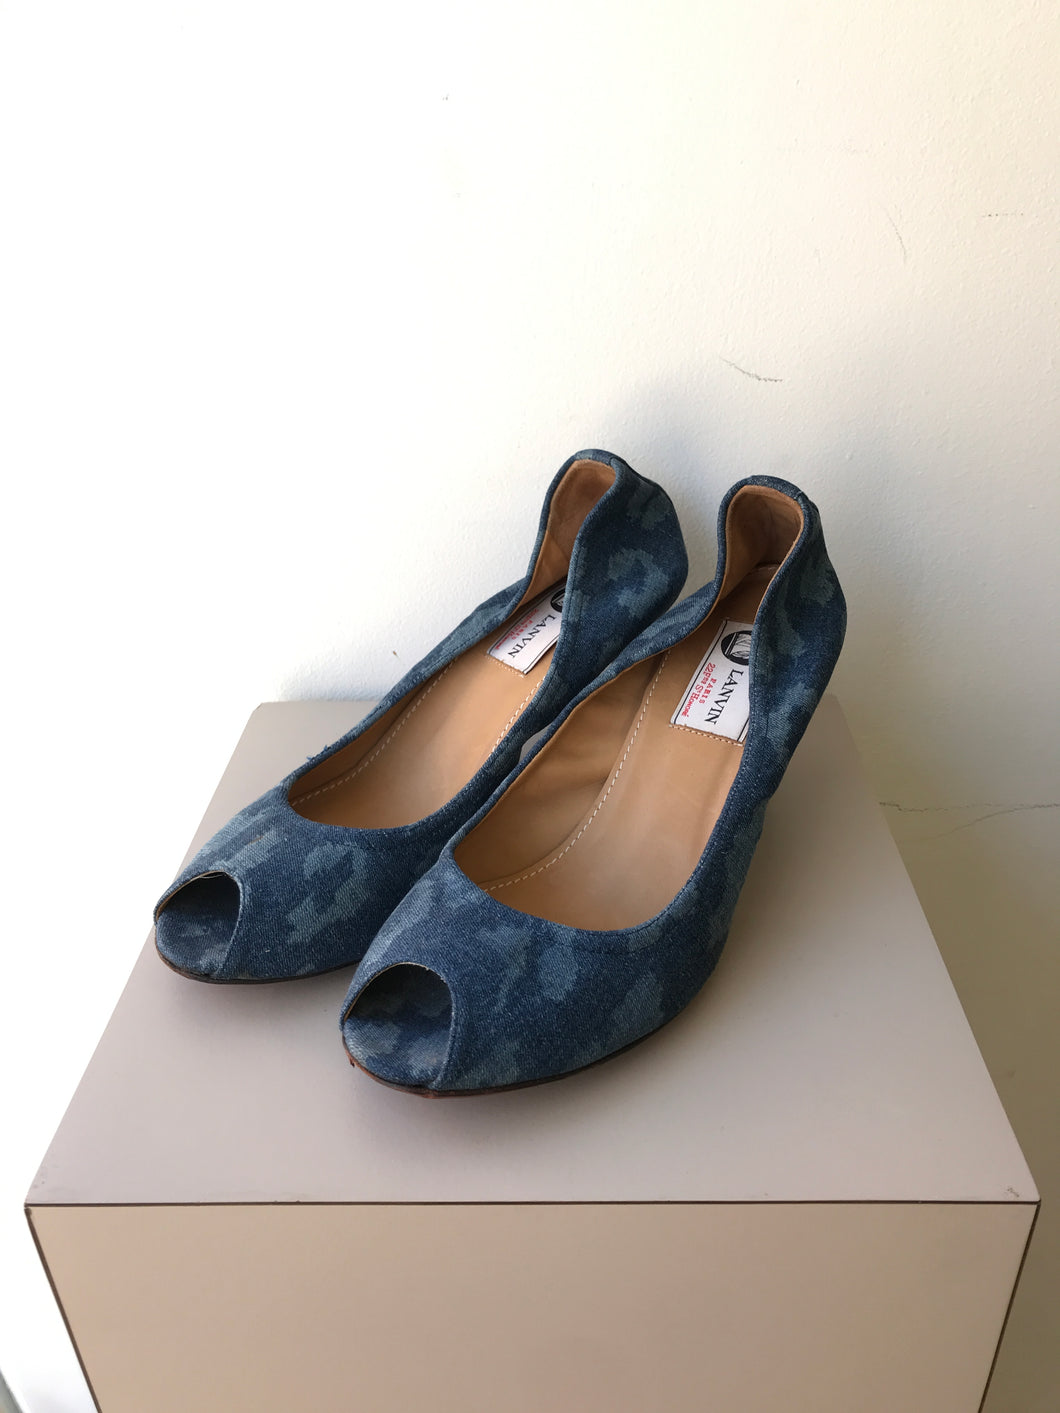 Lanvin denim camo peep toe pumps size 39 - My Girlfriend's Wardrobe